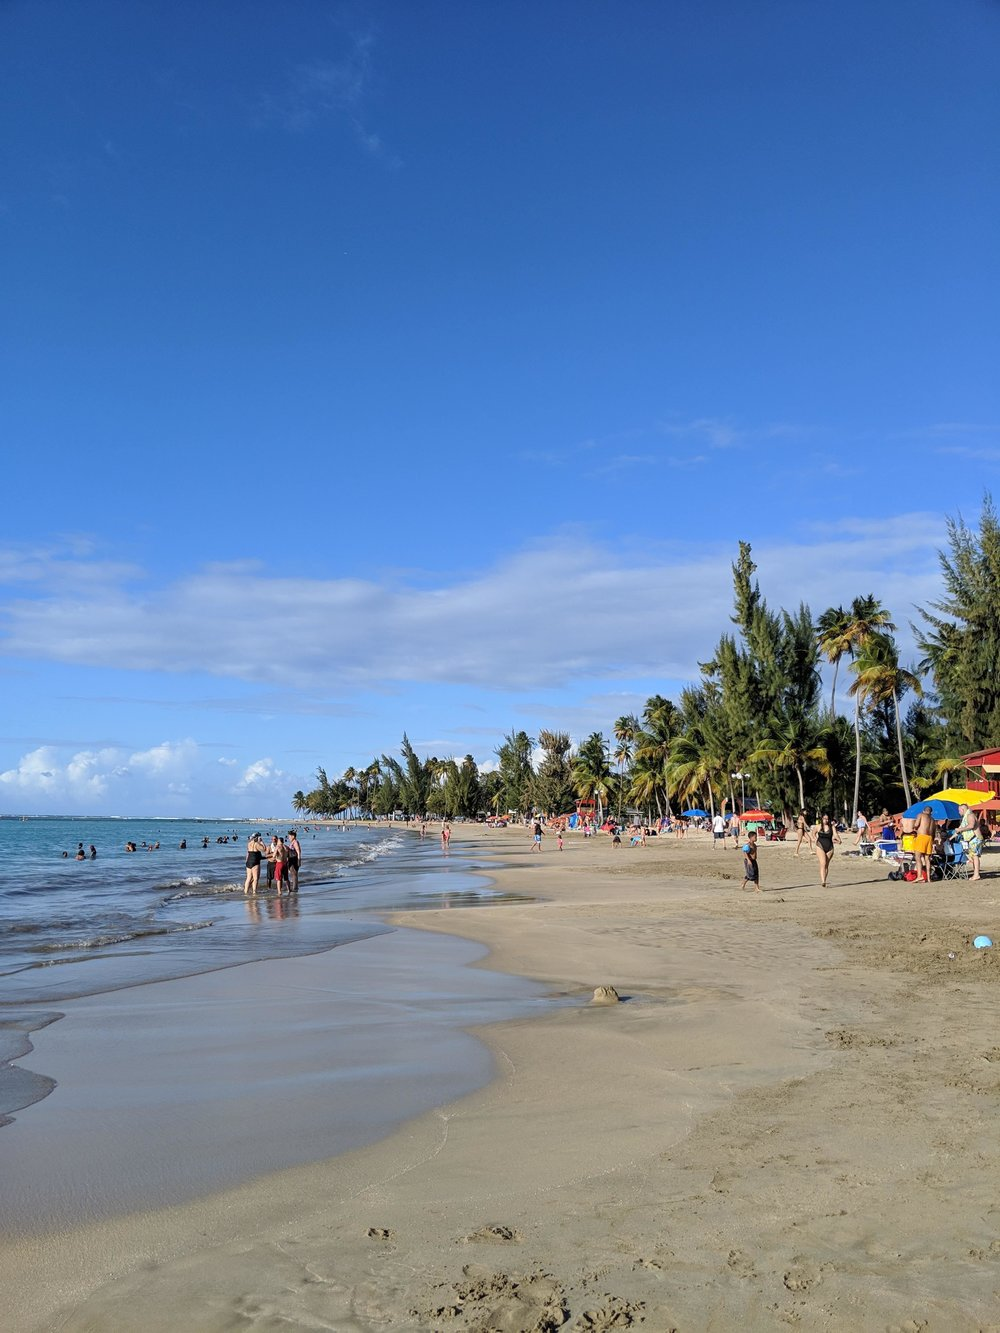 A wide view of the beach that we explored